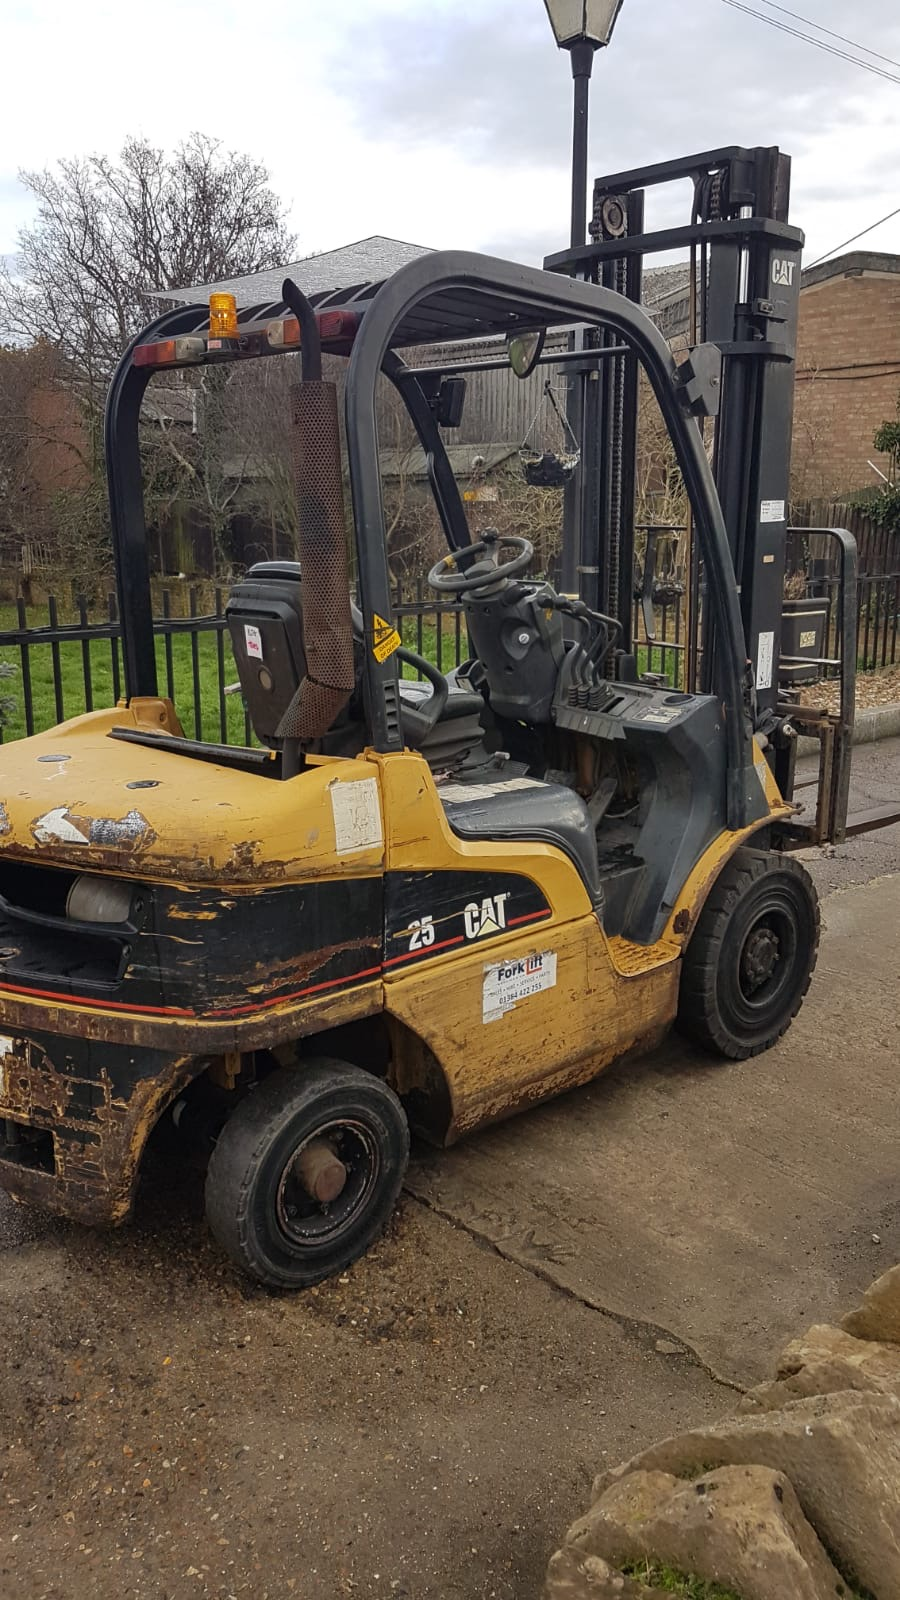 CATERPILLAR DP25N DIESEL POWERED FORKLIFT TRUCK, YEAR 2004 BUILD, WITH SIDE SHIFT, 2.5 TONNE RATED - Image 3 of 5